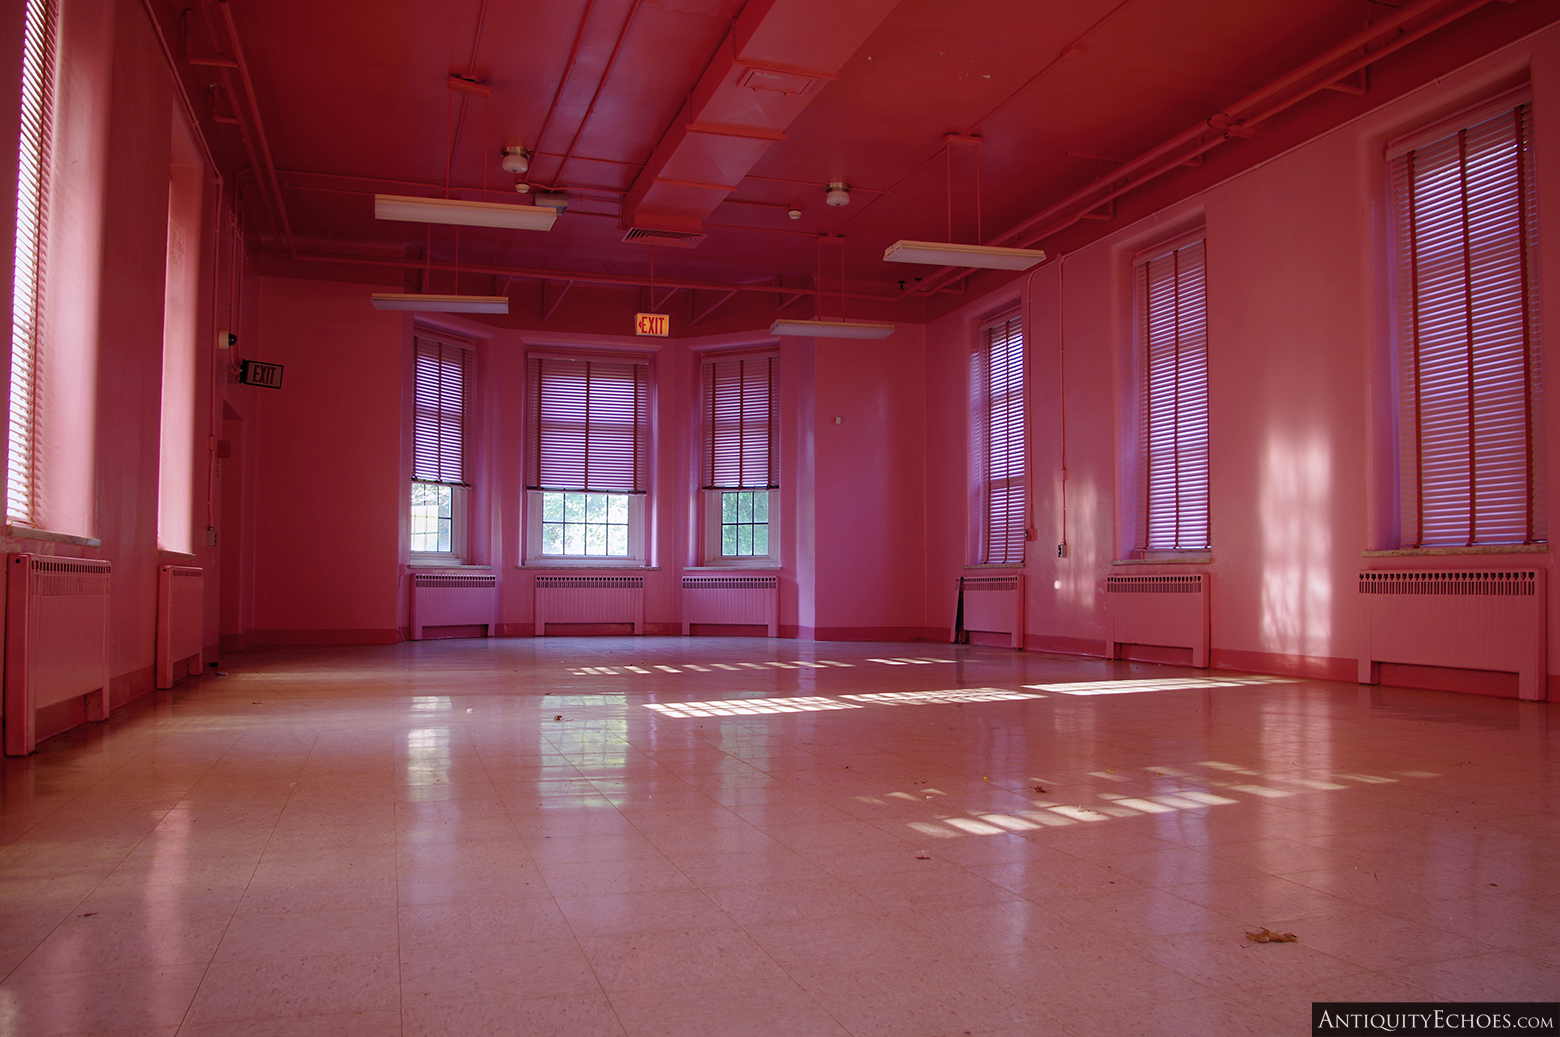 Allentown State Hospital - Pink Ward where Glass was Filmed